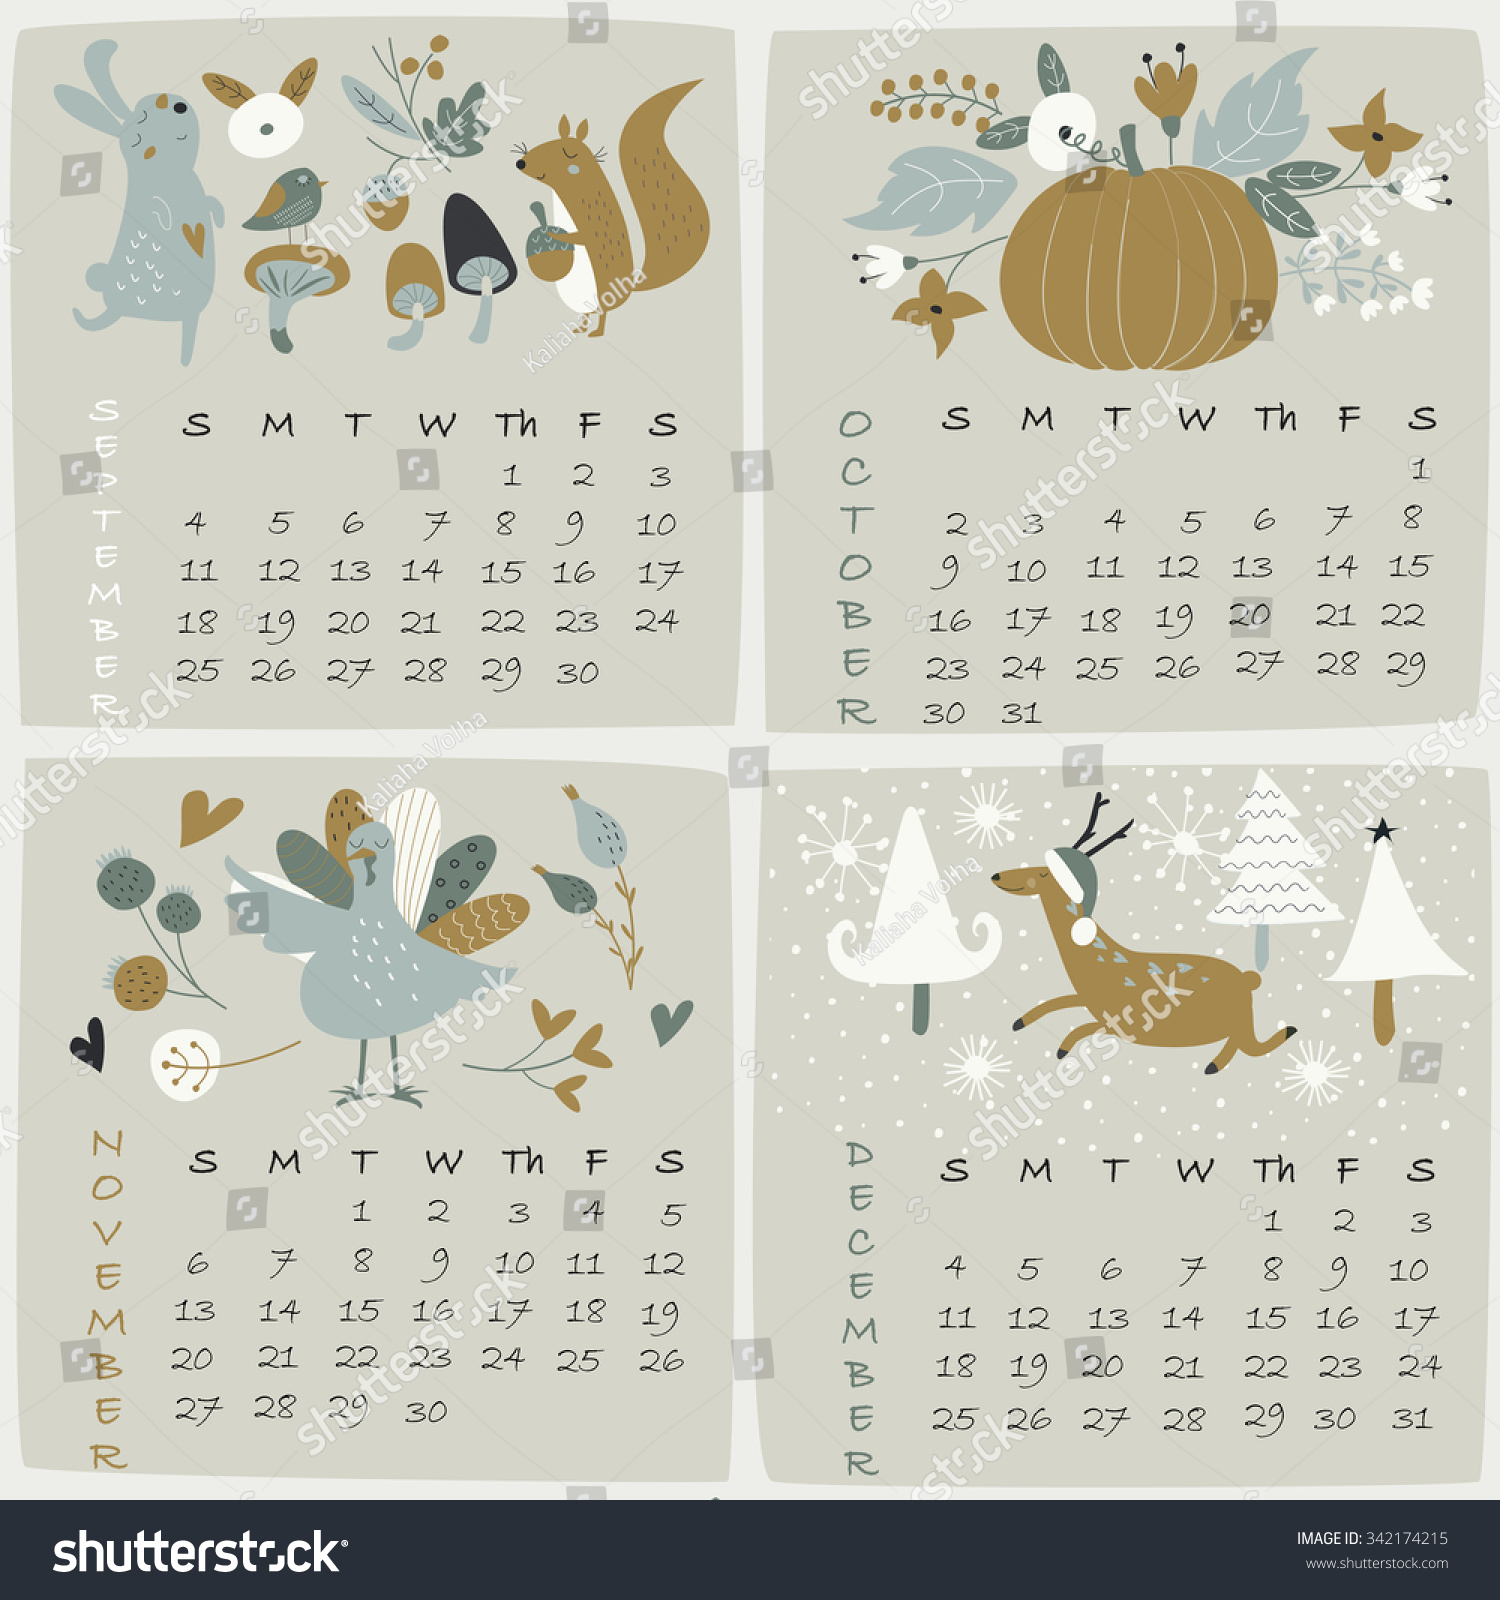 Cute Calendar Illustration : Calendar september october november december stock